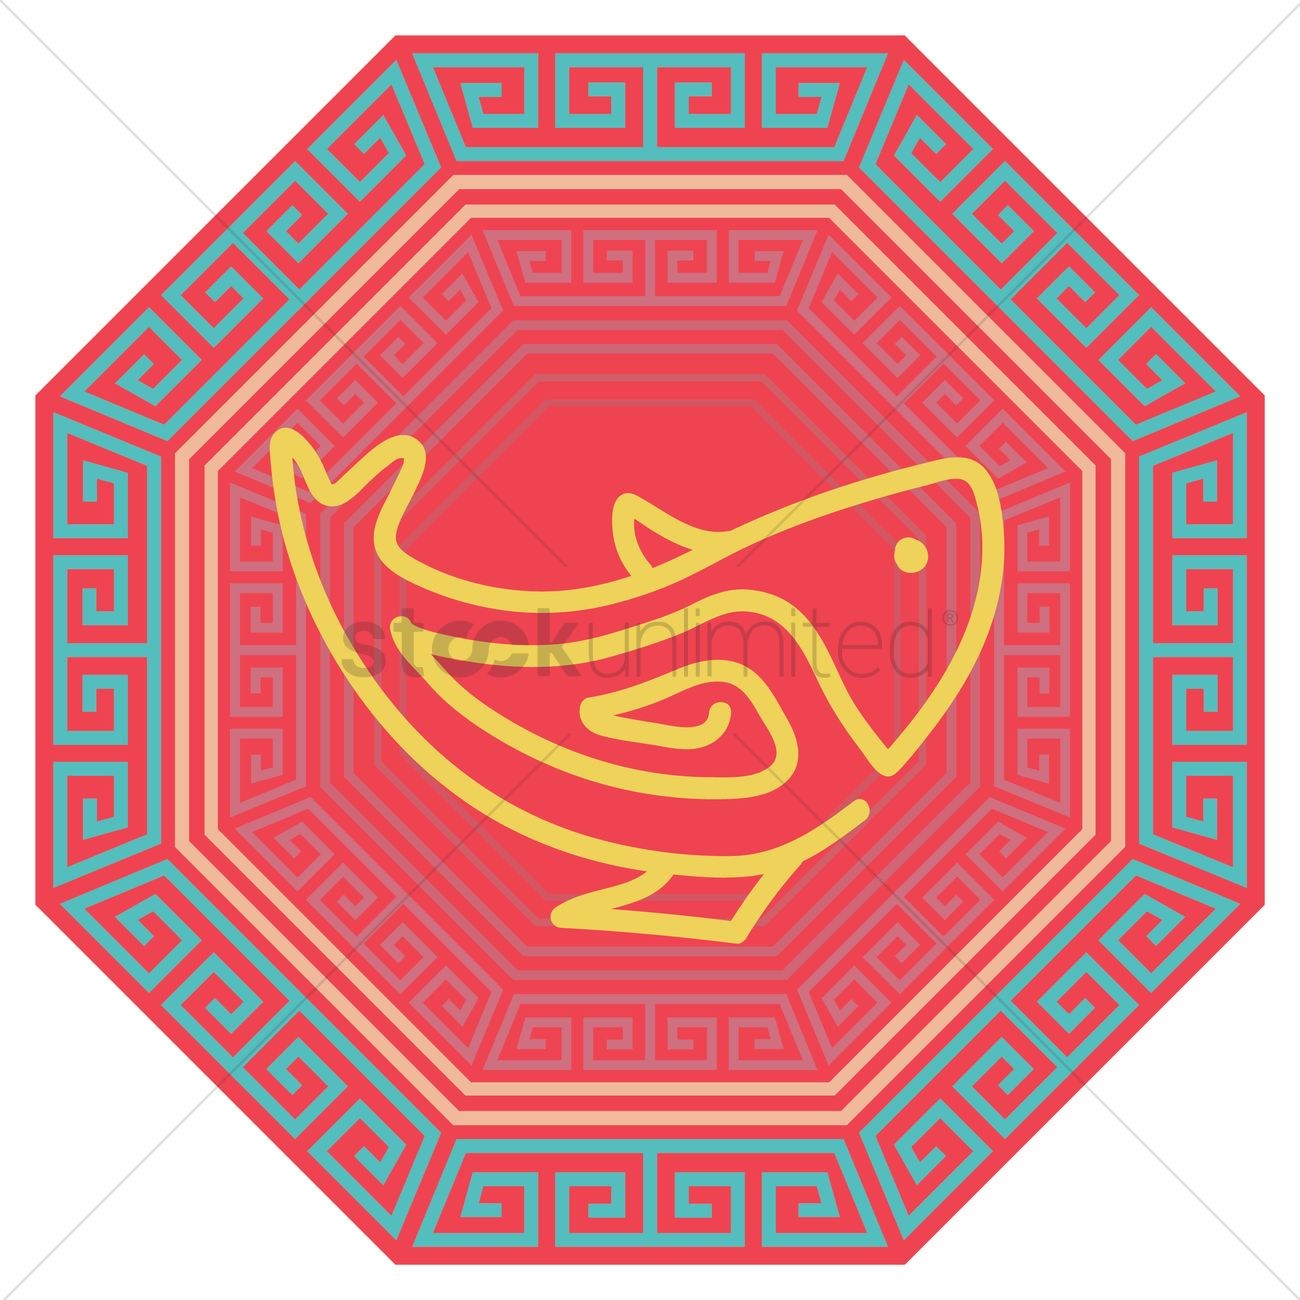 Chinese fish symbol vector image 1378432 stockunlimited chinese fish symbol vector graphic buycottarizona Gallery